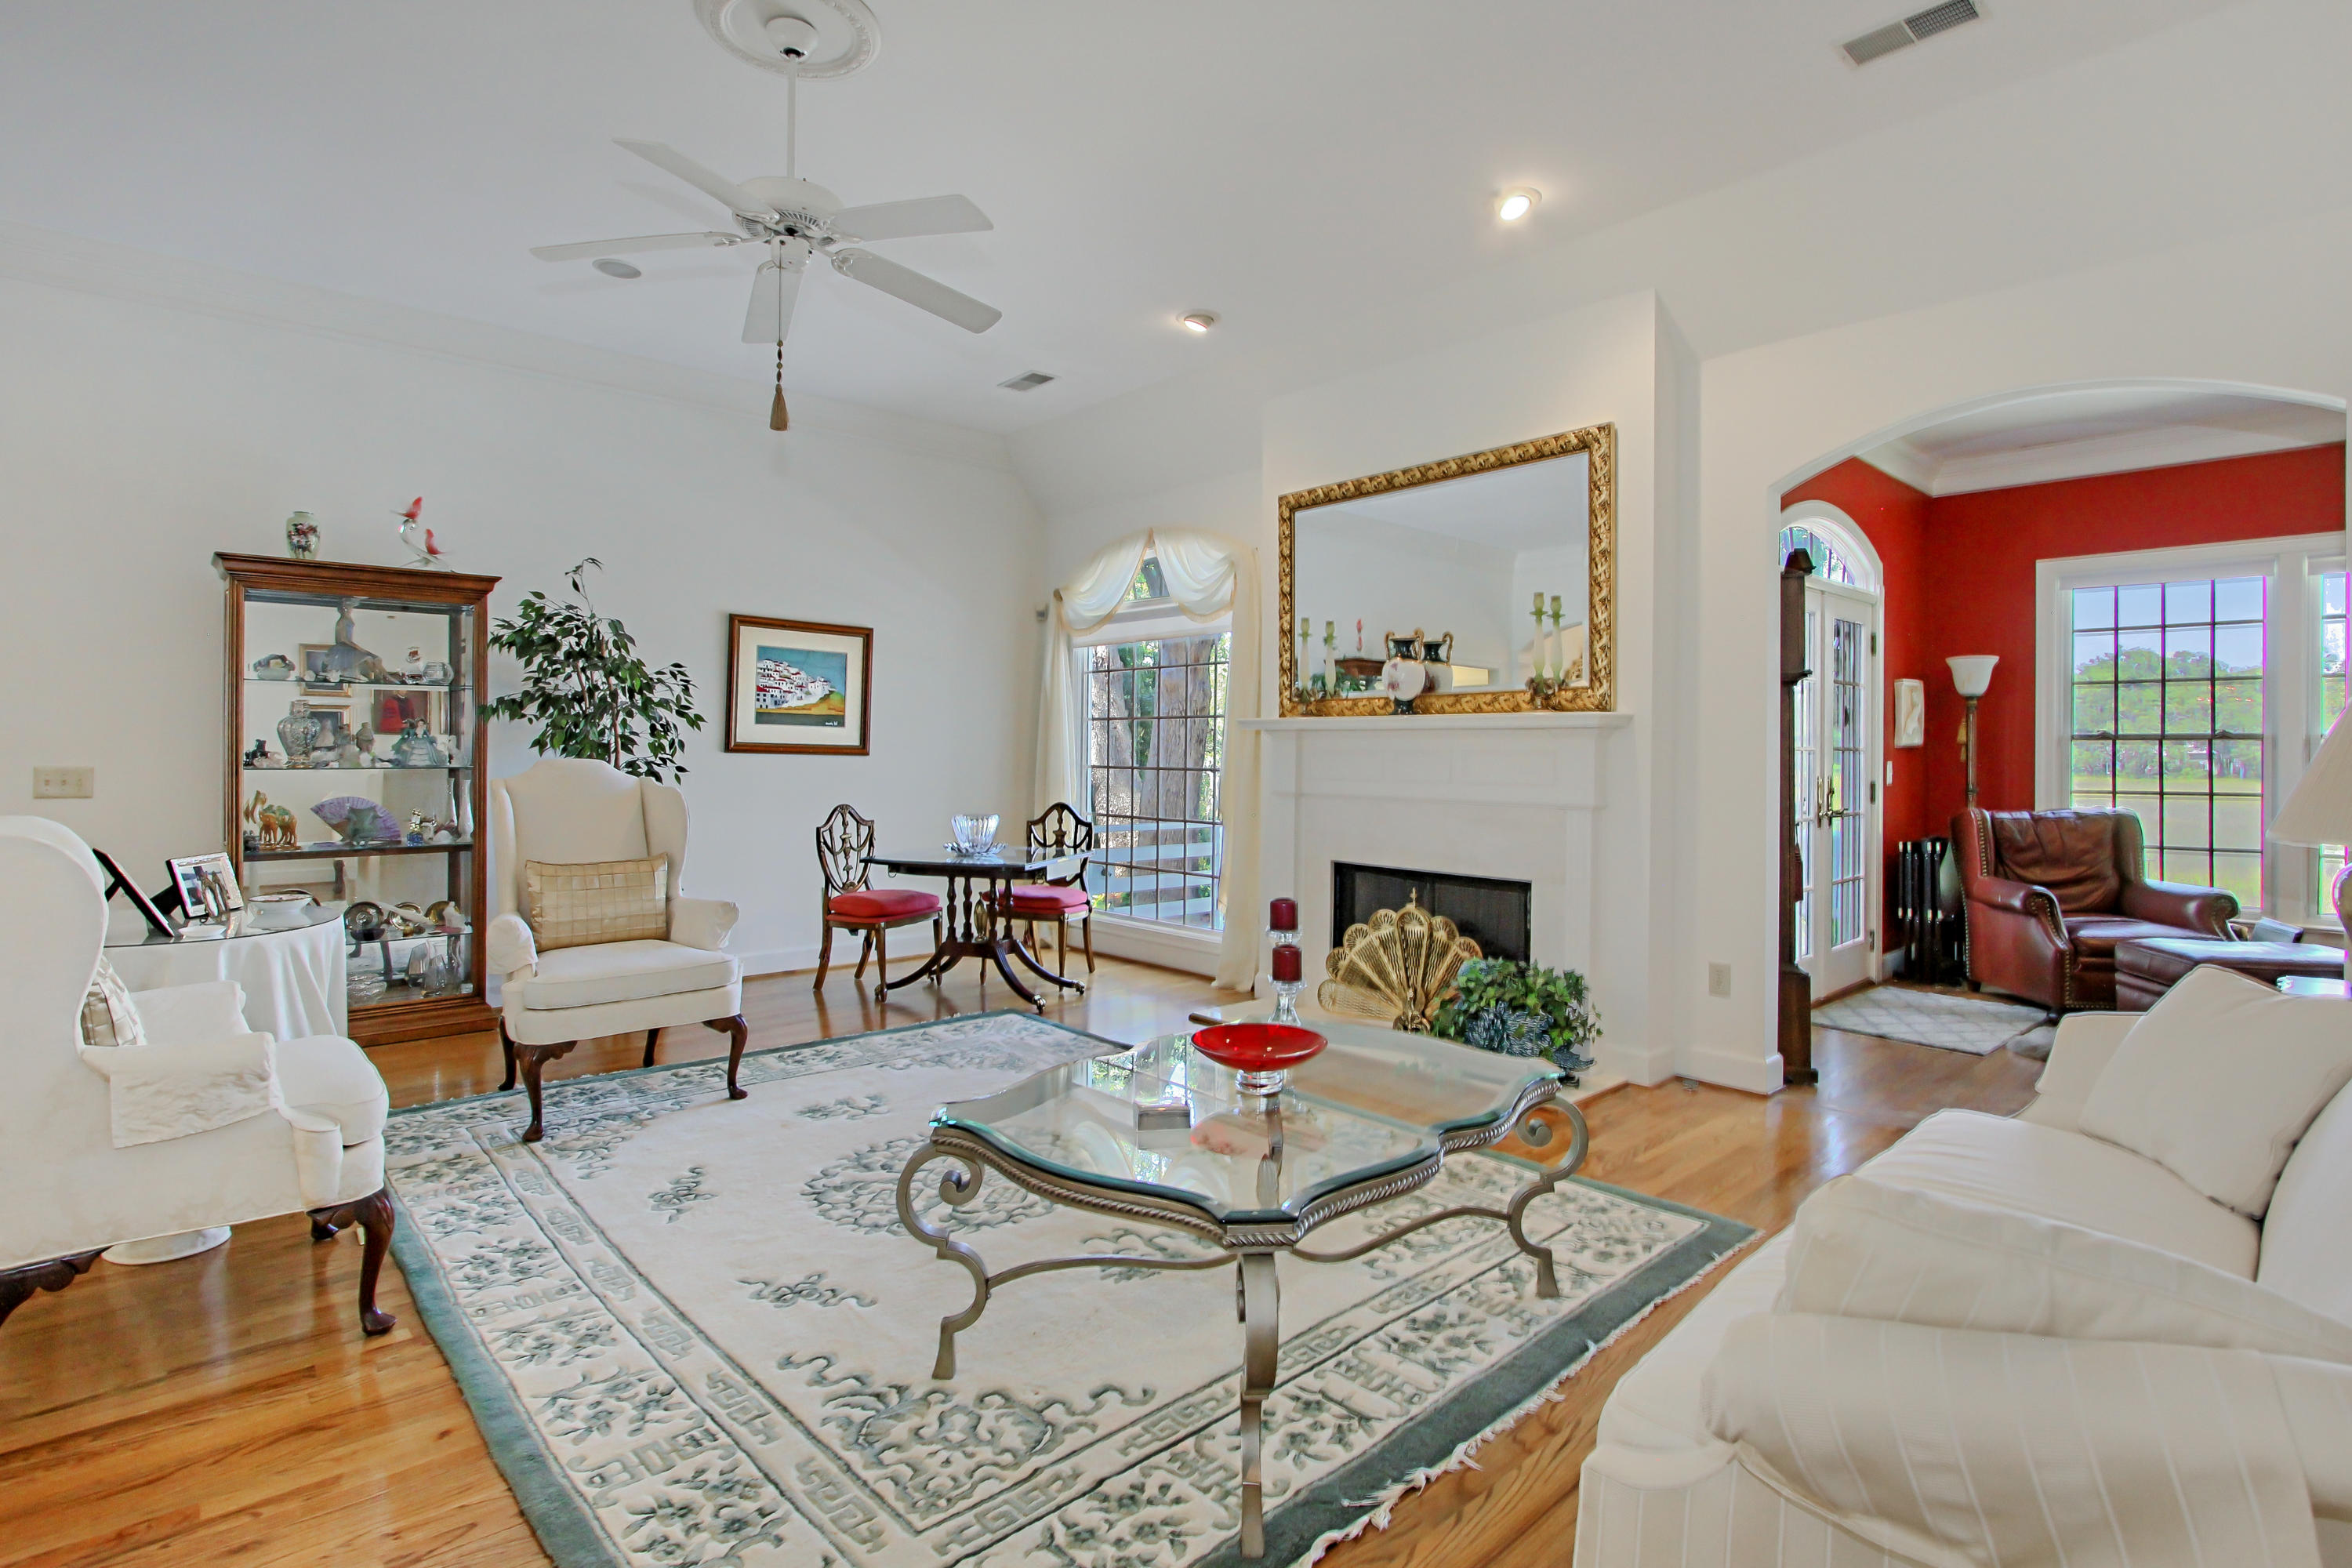 Stiles Point Plantation Homes For Sale - 837 Whispering Marsh, Charleston, SC - 18